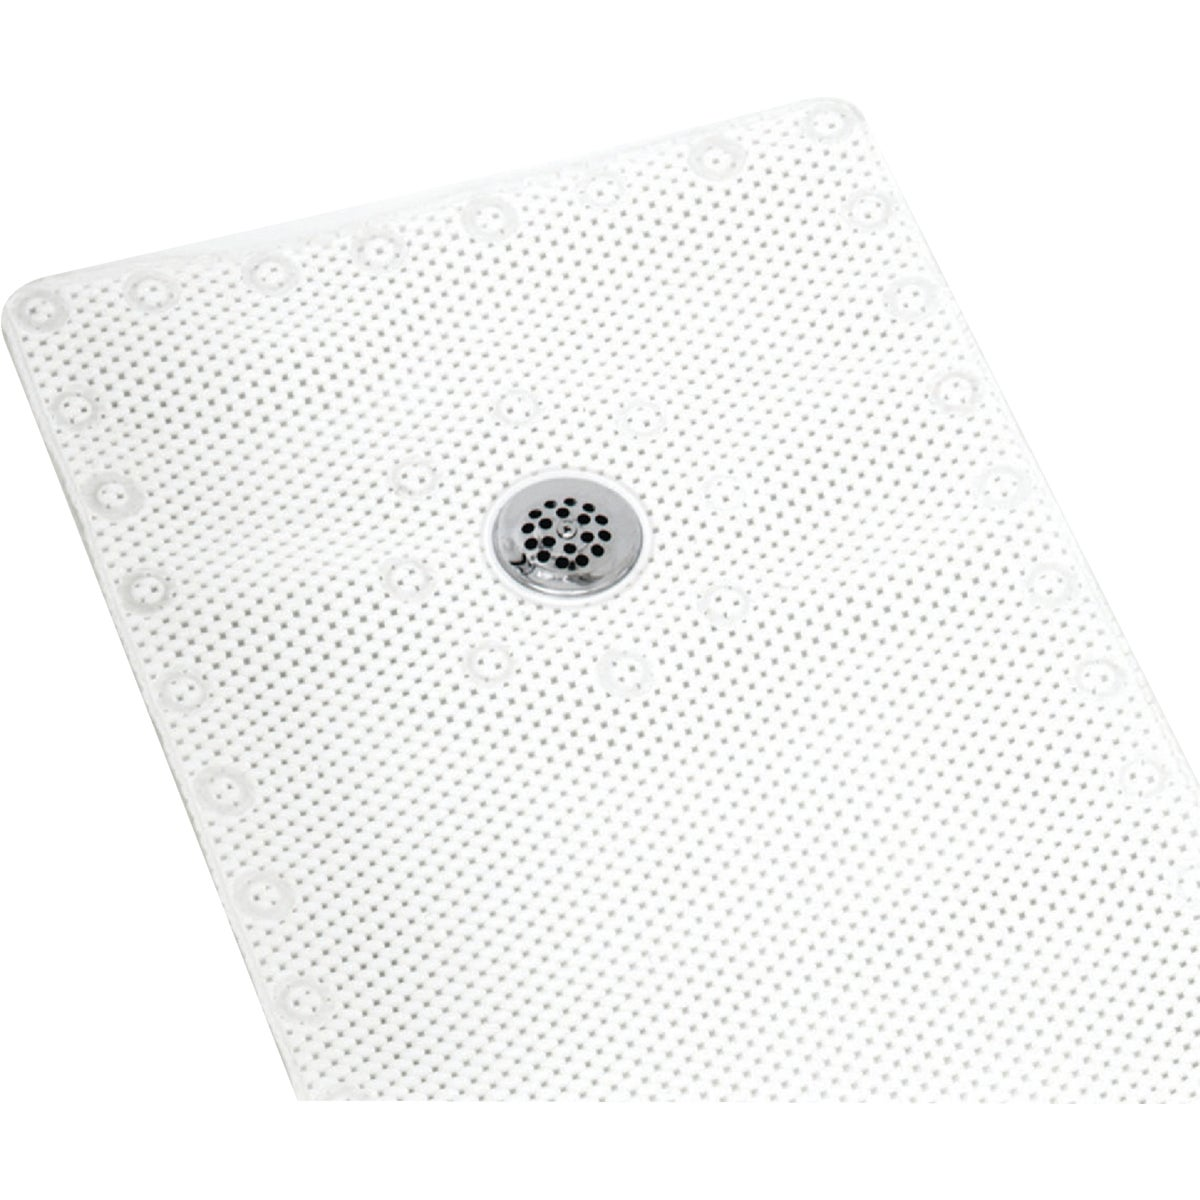 WHITE FOAM SHOWER MAT - 76WW by Zenith Prod Corp